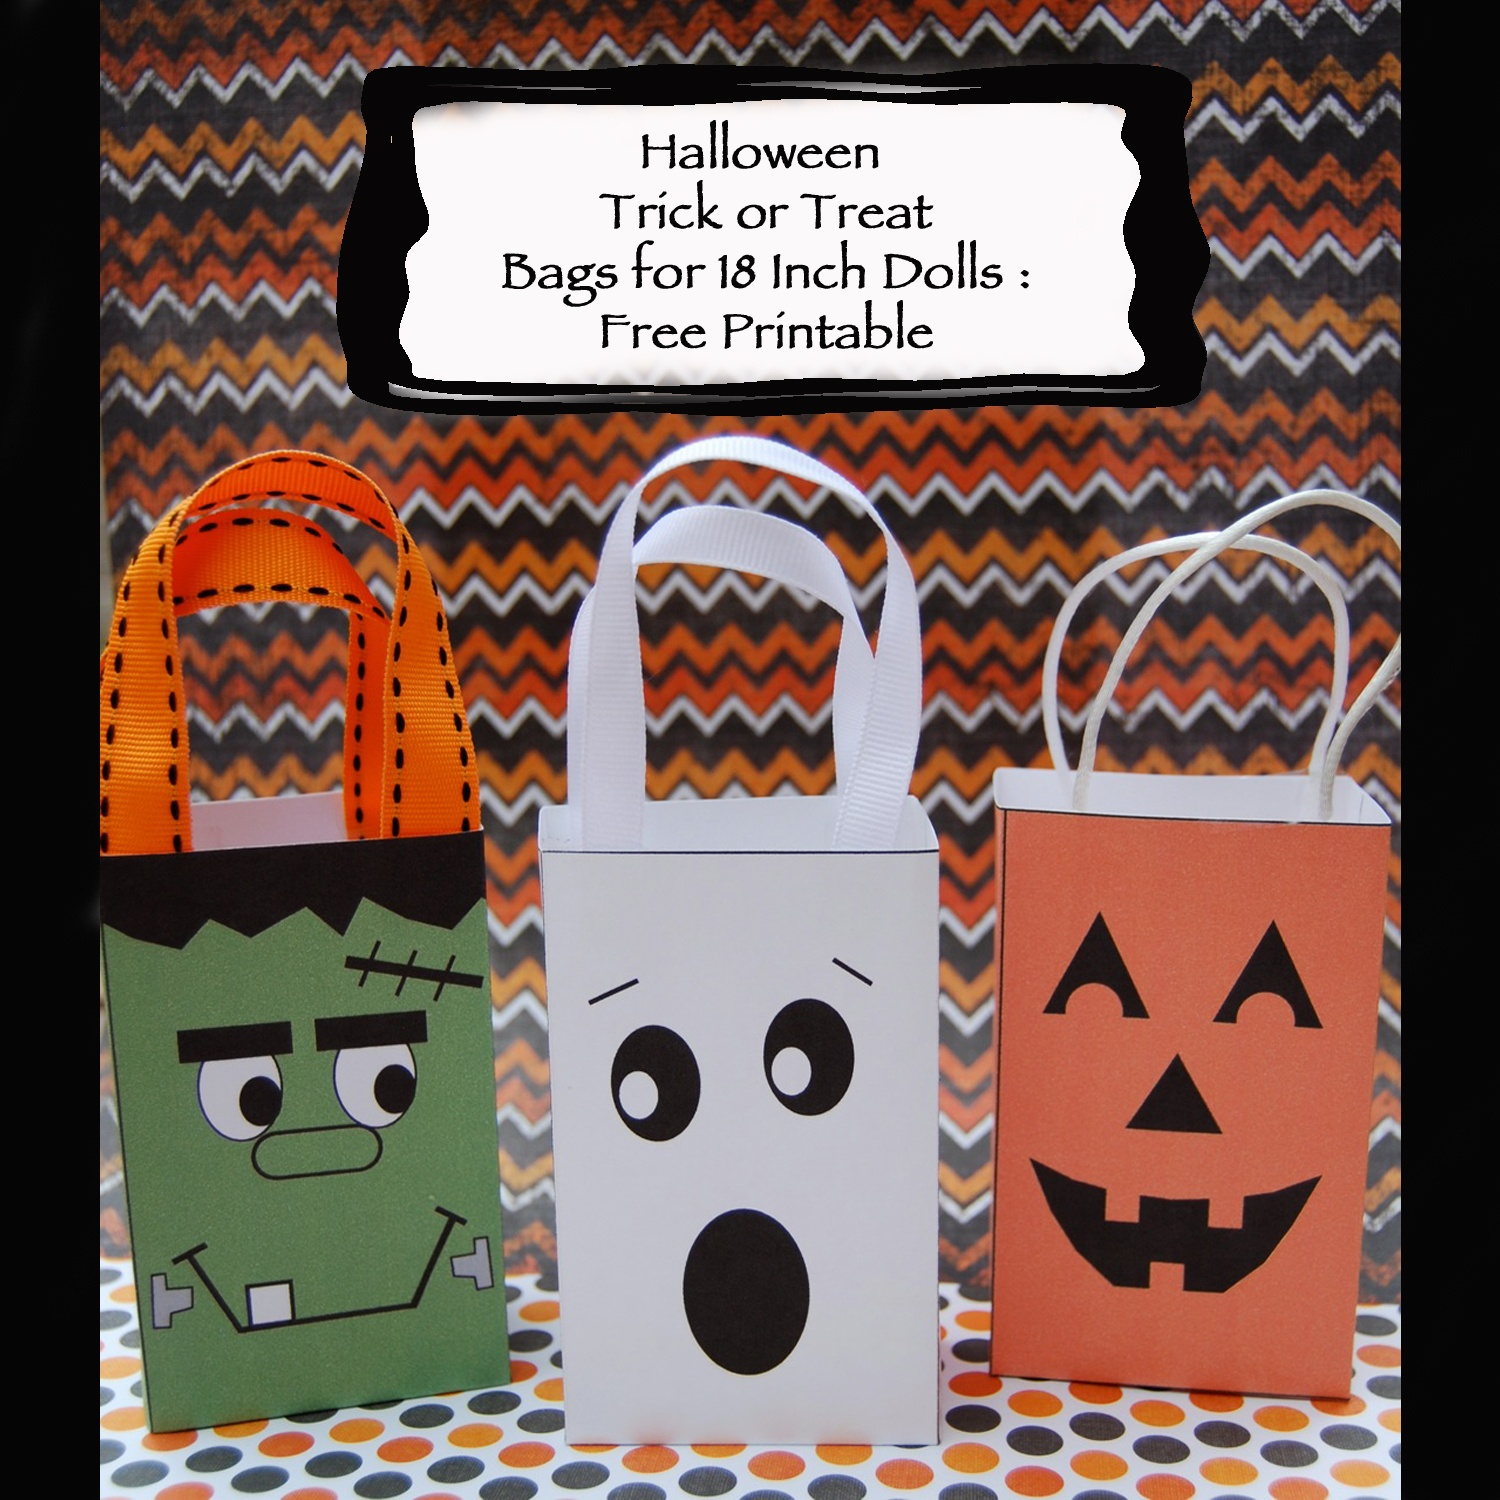 Dream. Dress. Play.: Halloween Trick Or Treat Bags For 18 Inch Dolls - Free Printable Trick Or Treat Bags